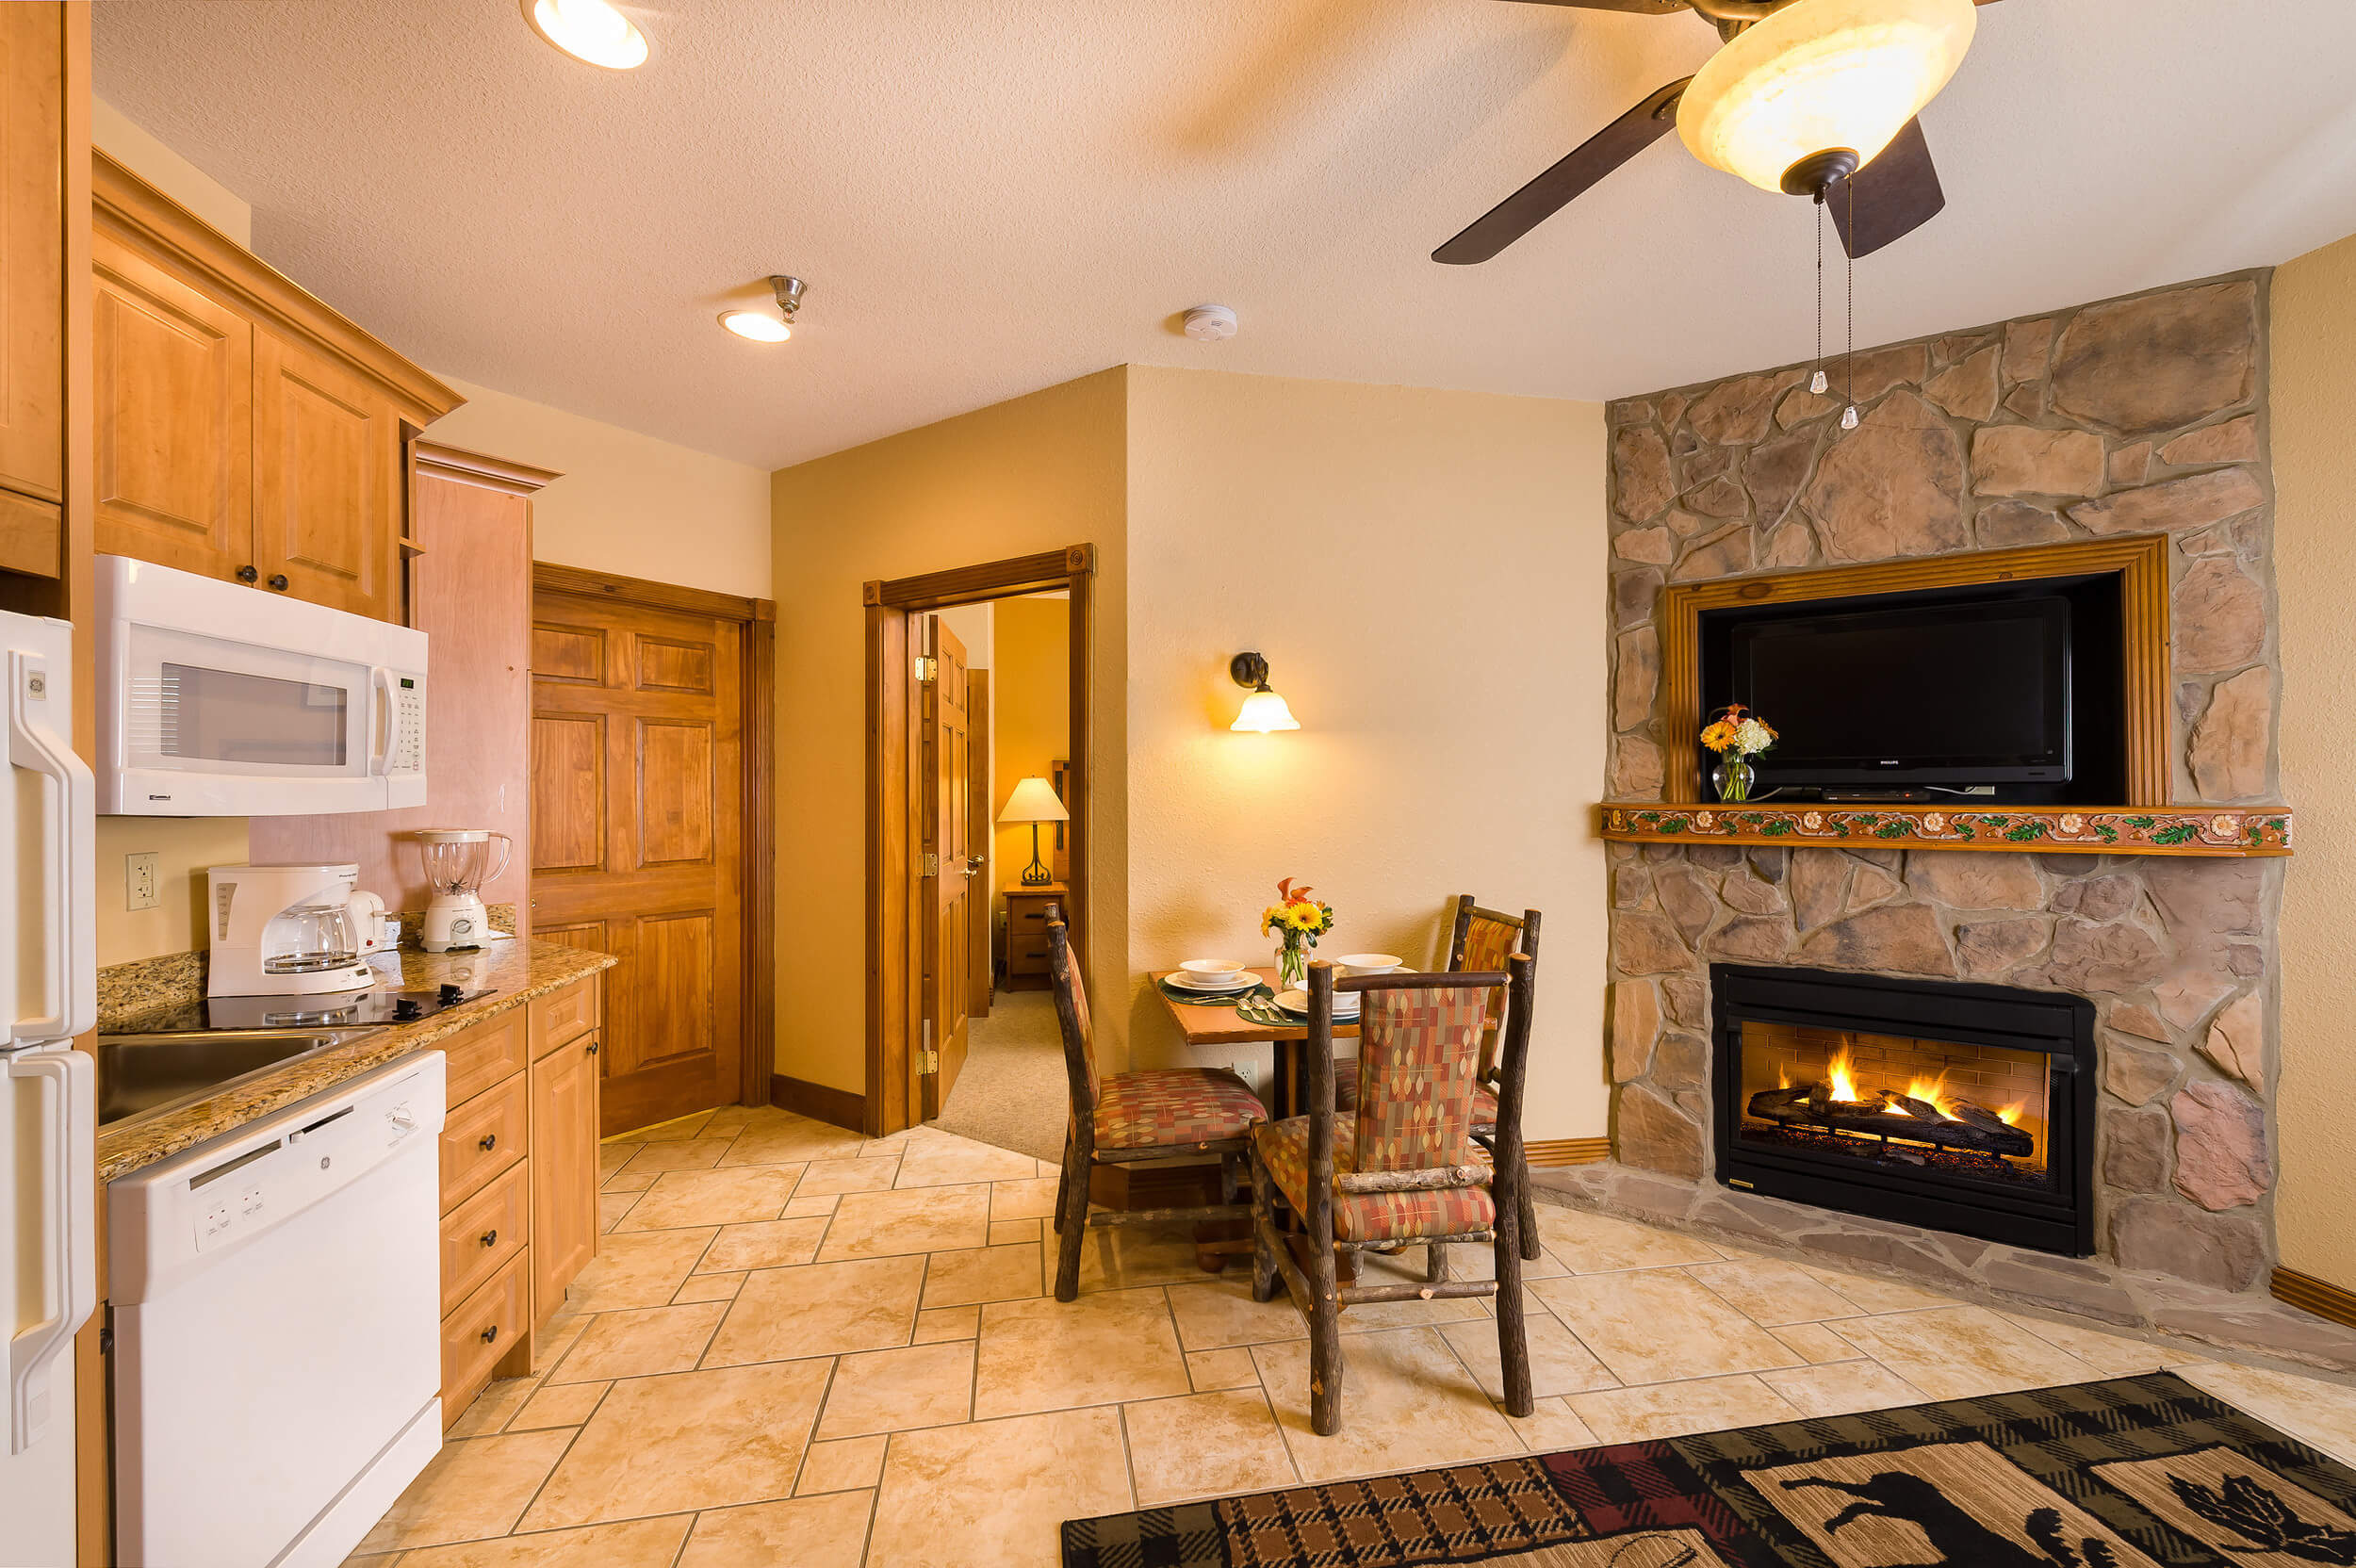 Kitchen and dining area with fireplace | Westgate Smoky Mountain Resort & Spa